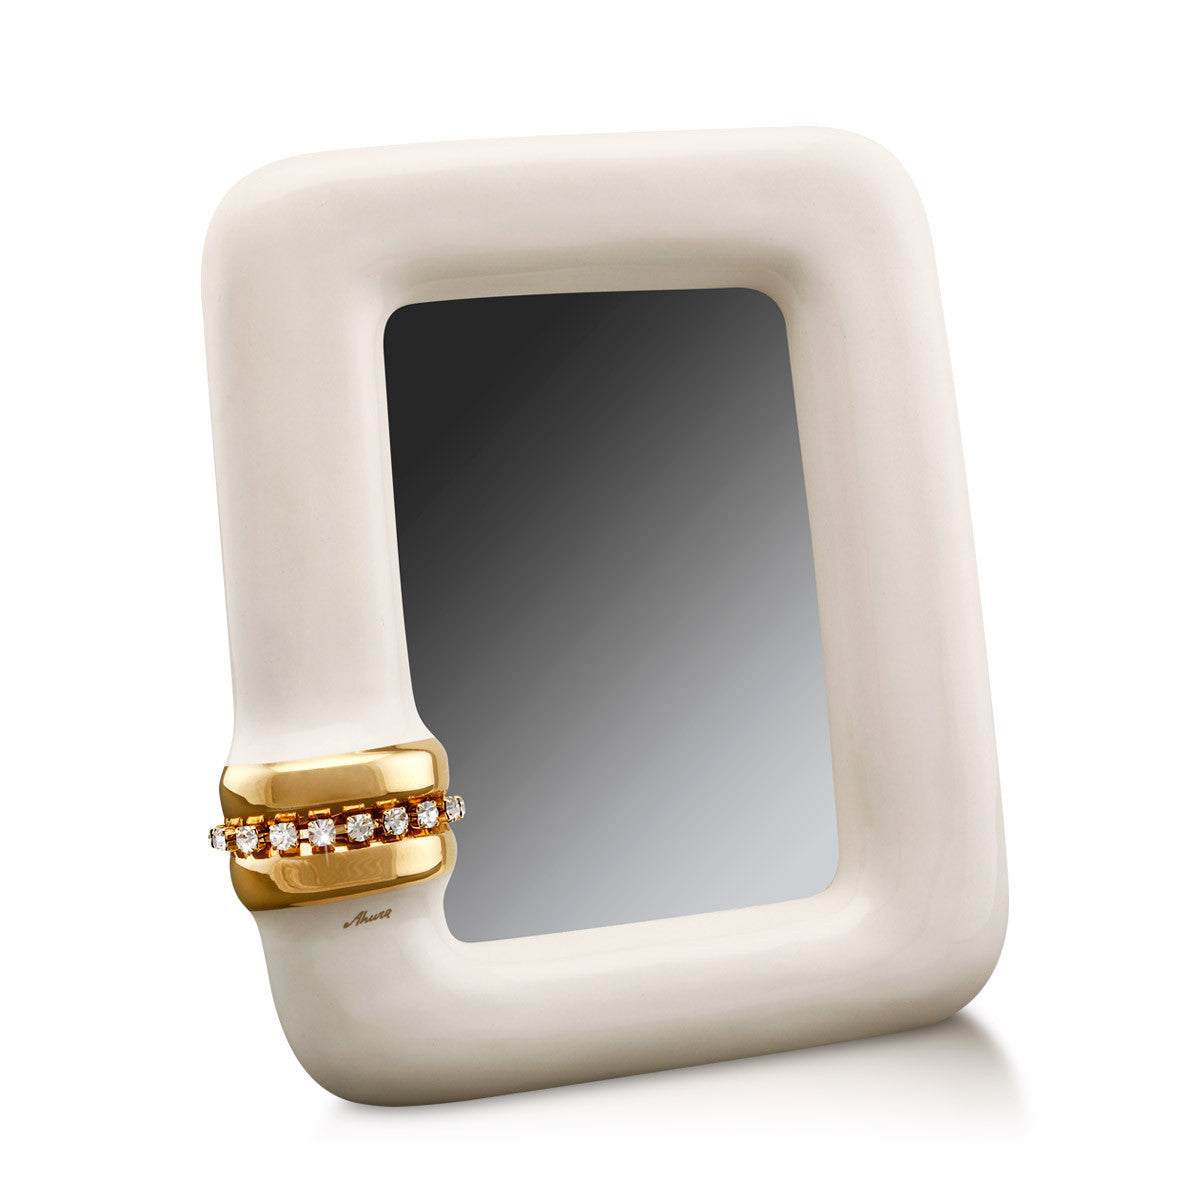 ceramic porcelain ivory photo frame finished in pure gold handmade in Italy